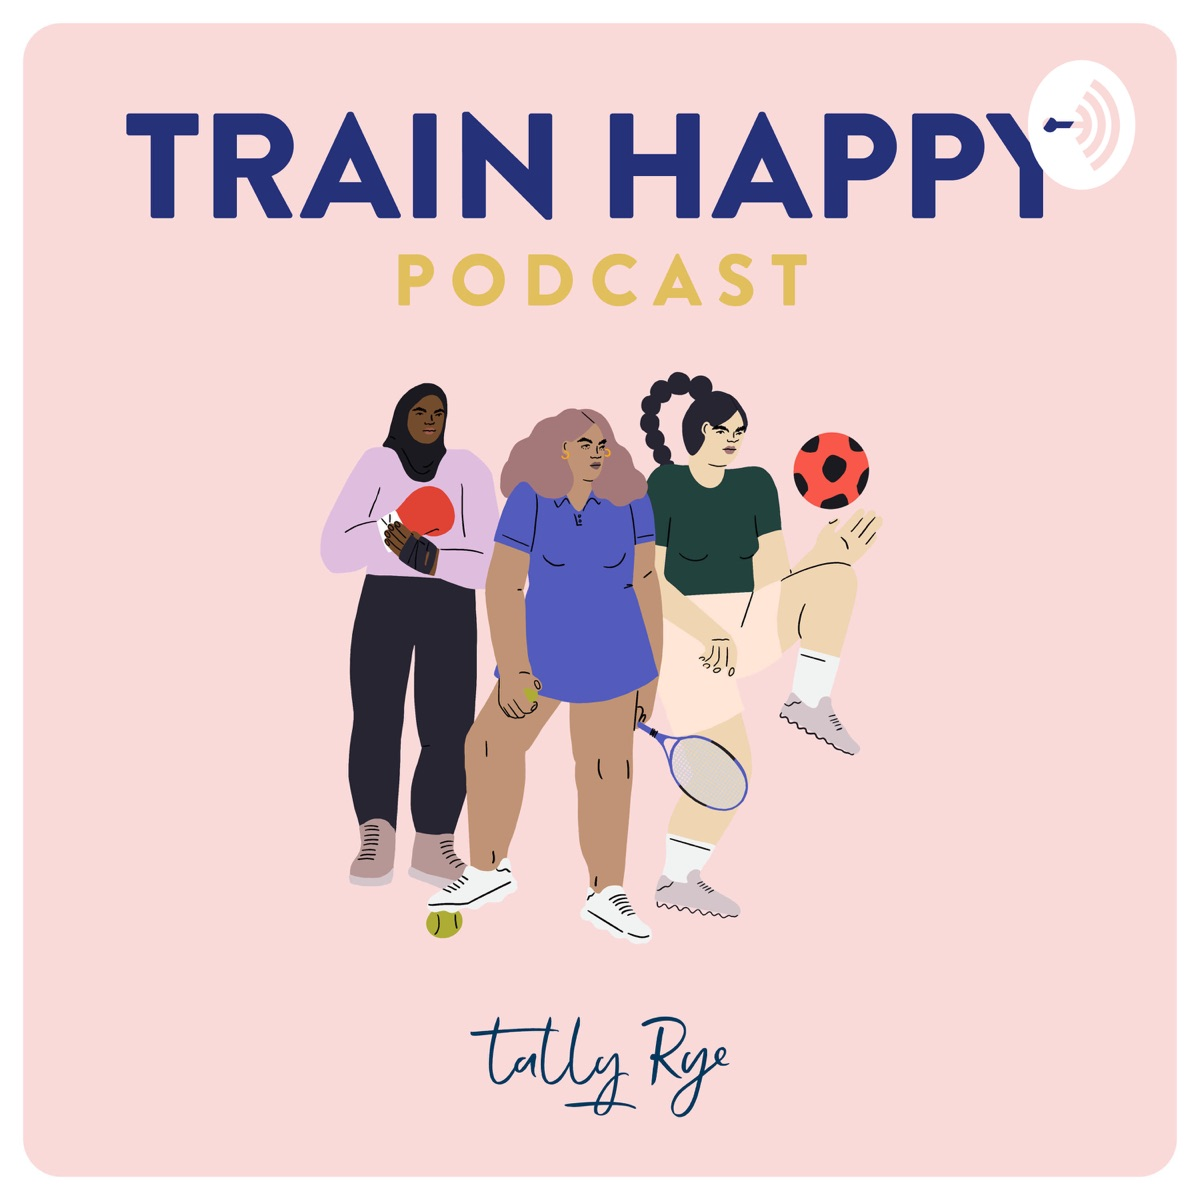 Train Happy Podcast